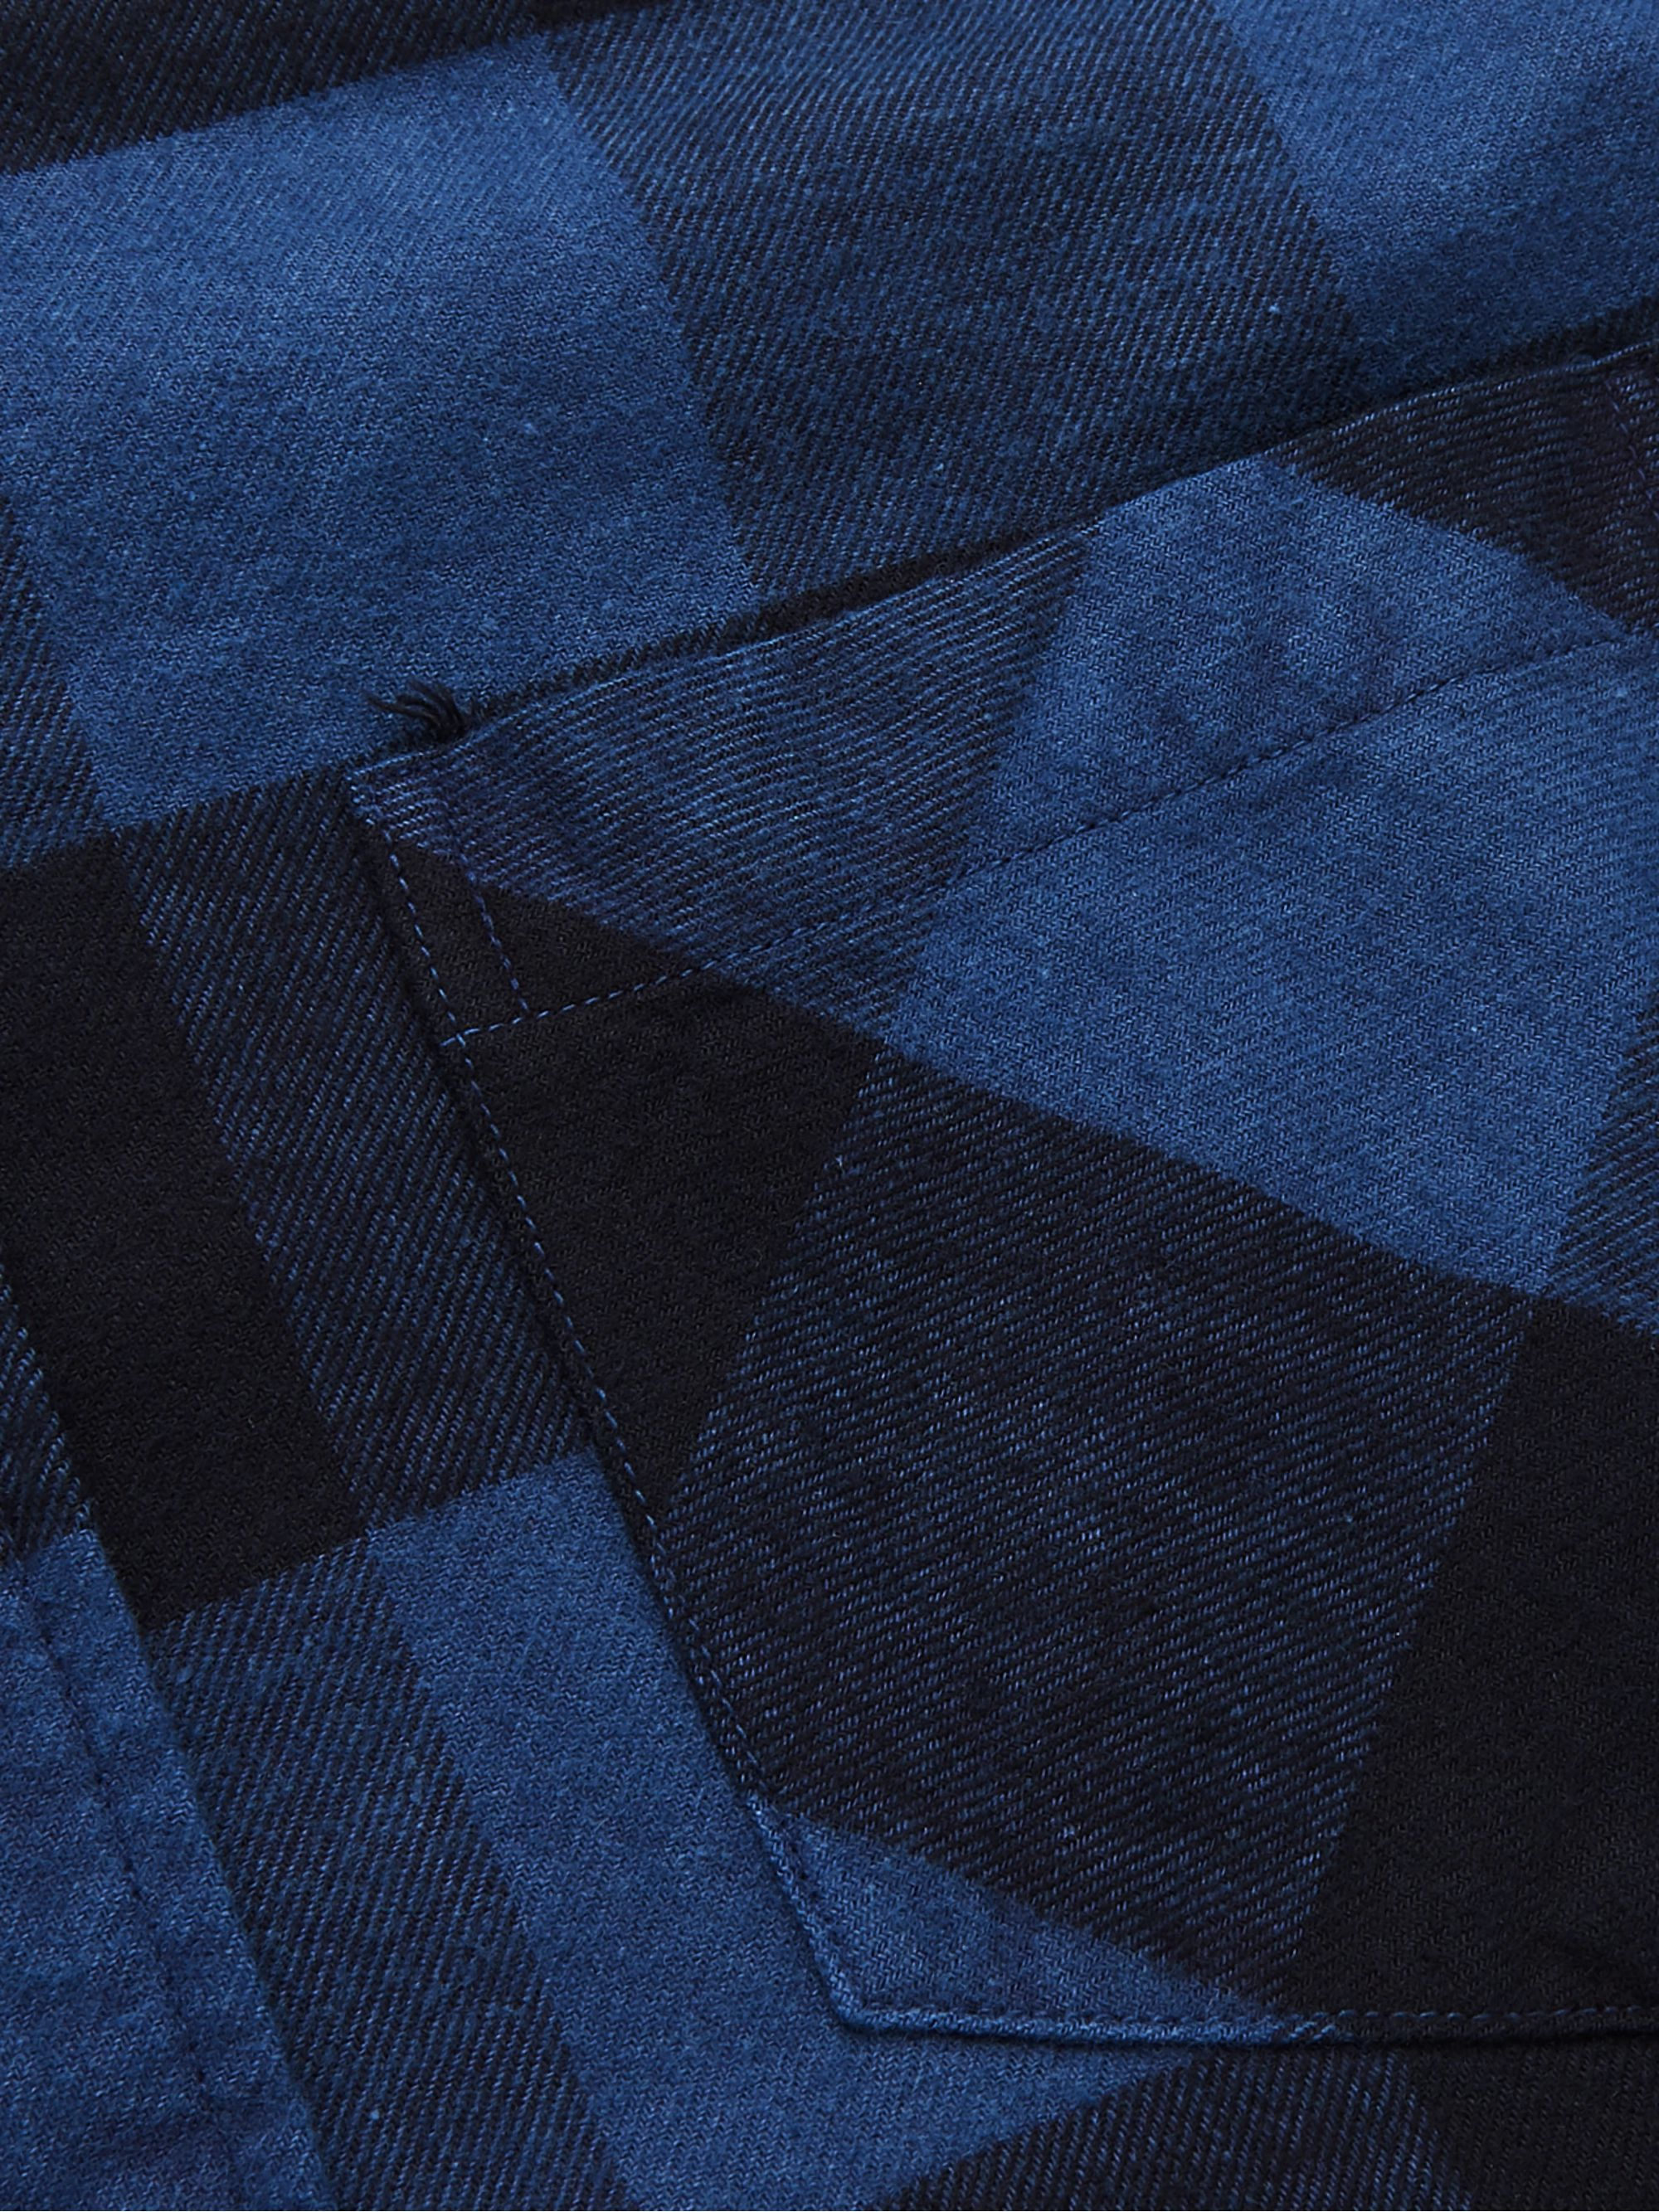 Blue Blue Japan Button-Down Collar Patchwork Checked Cotton-Flannel Shirt